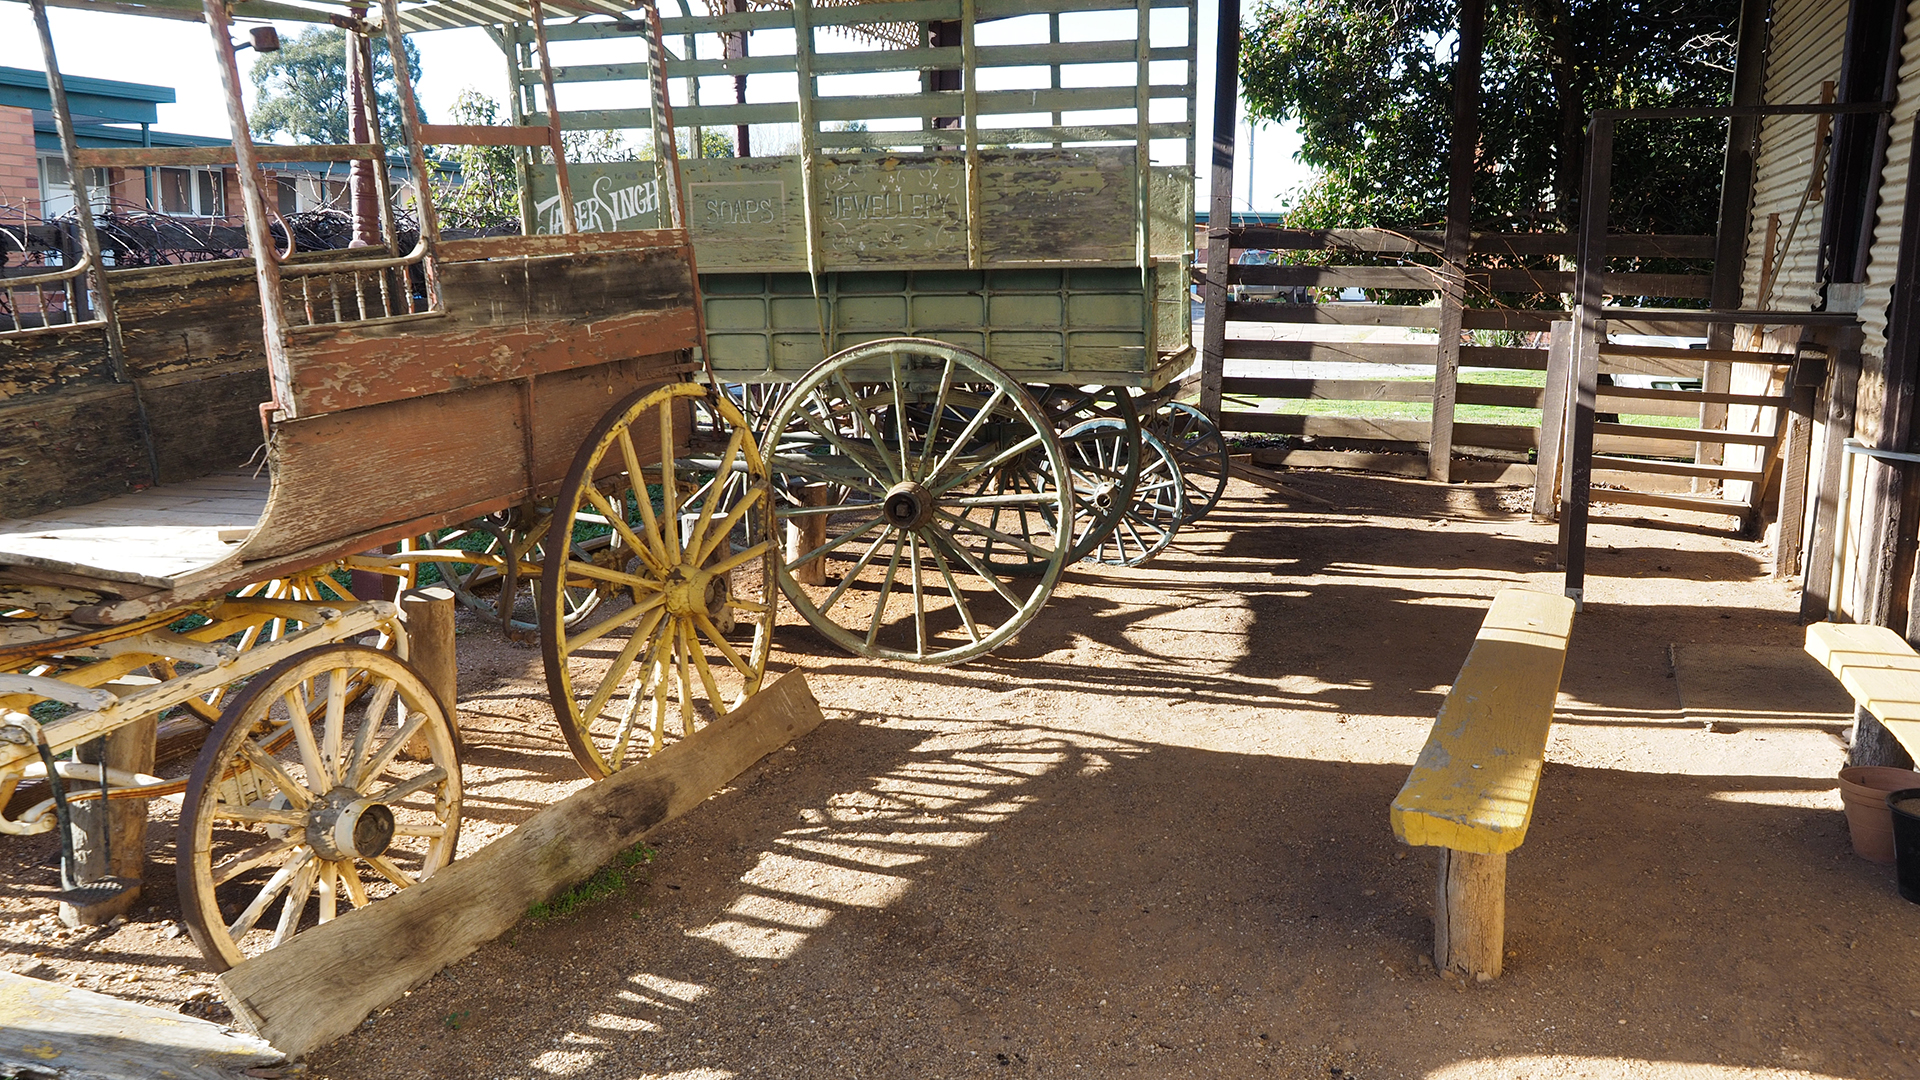 Historic buggies at the museum